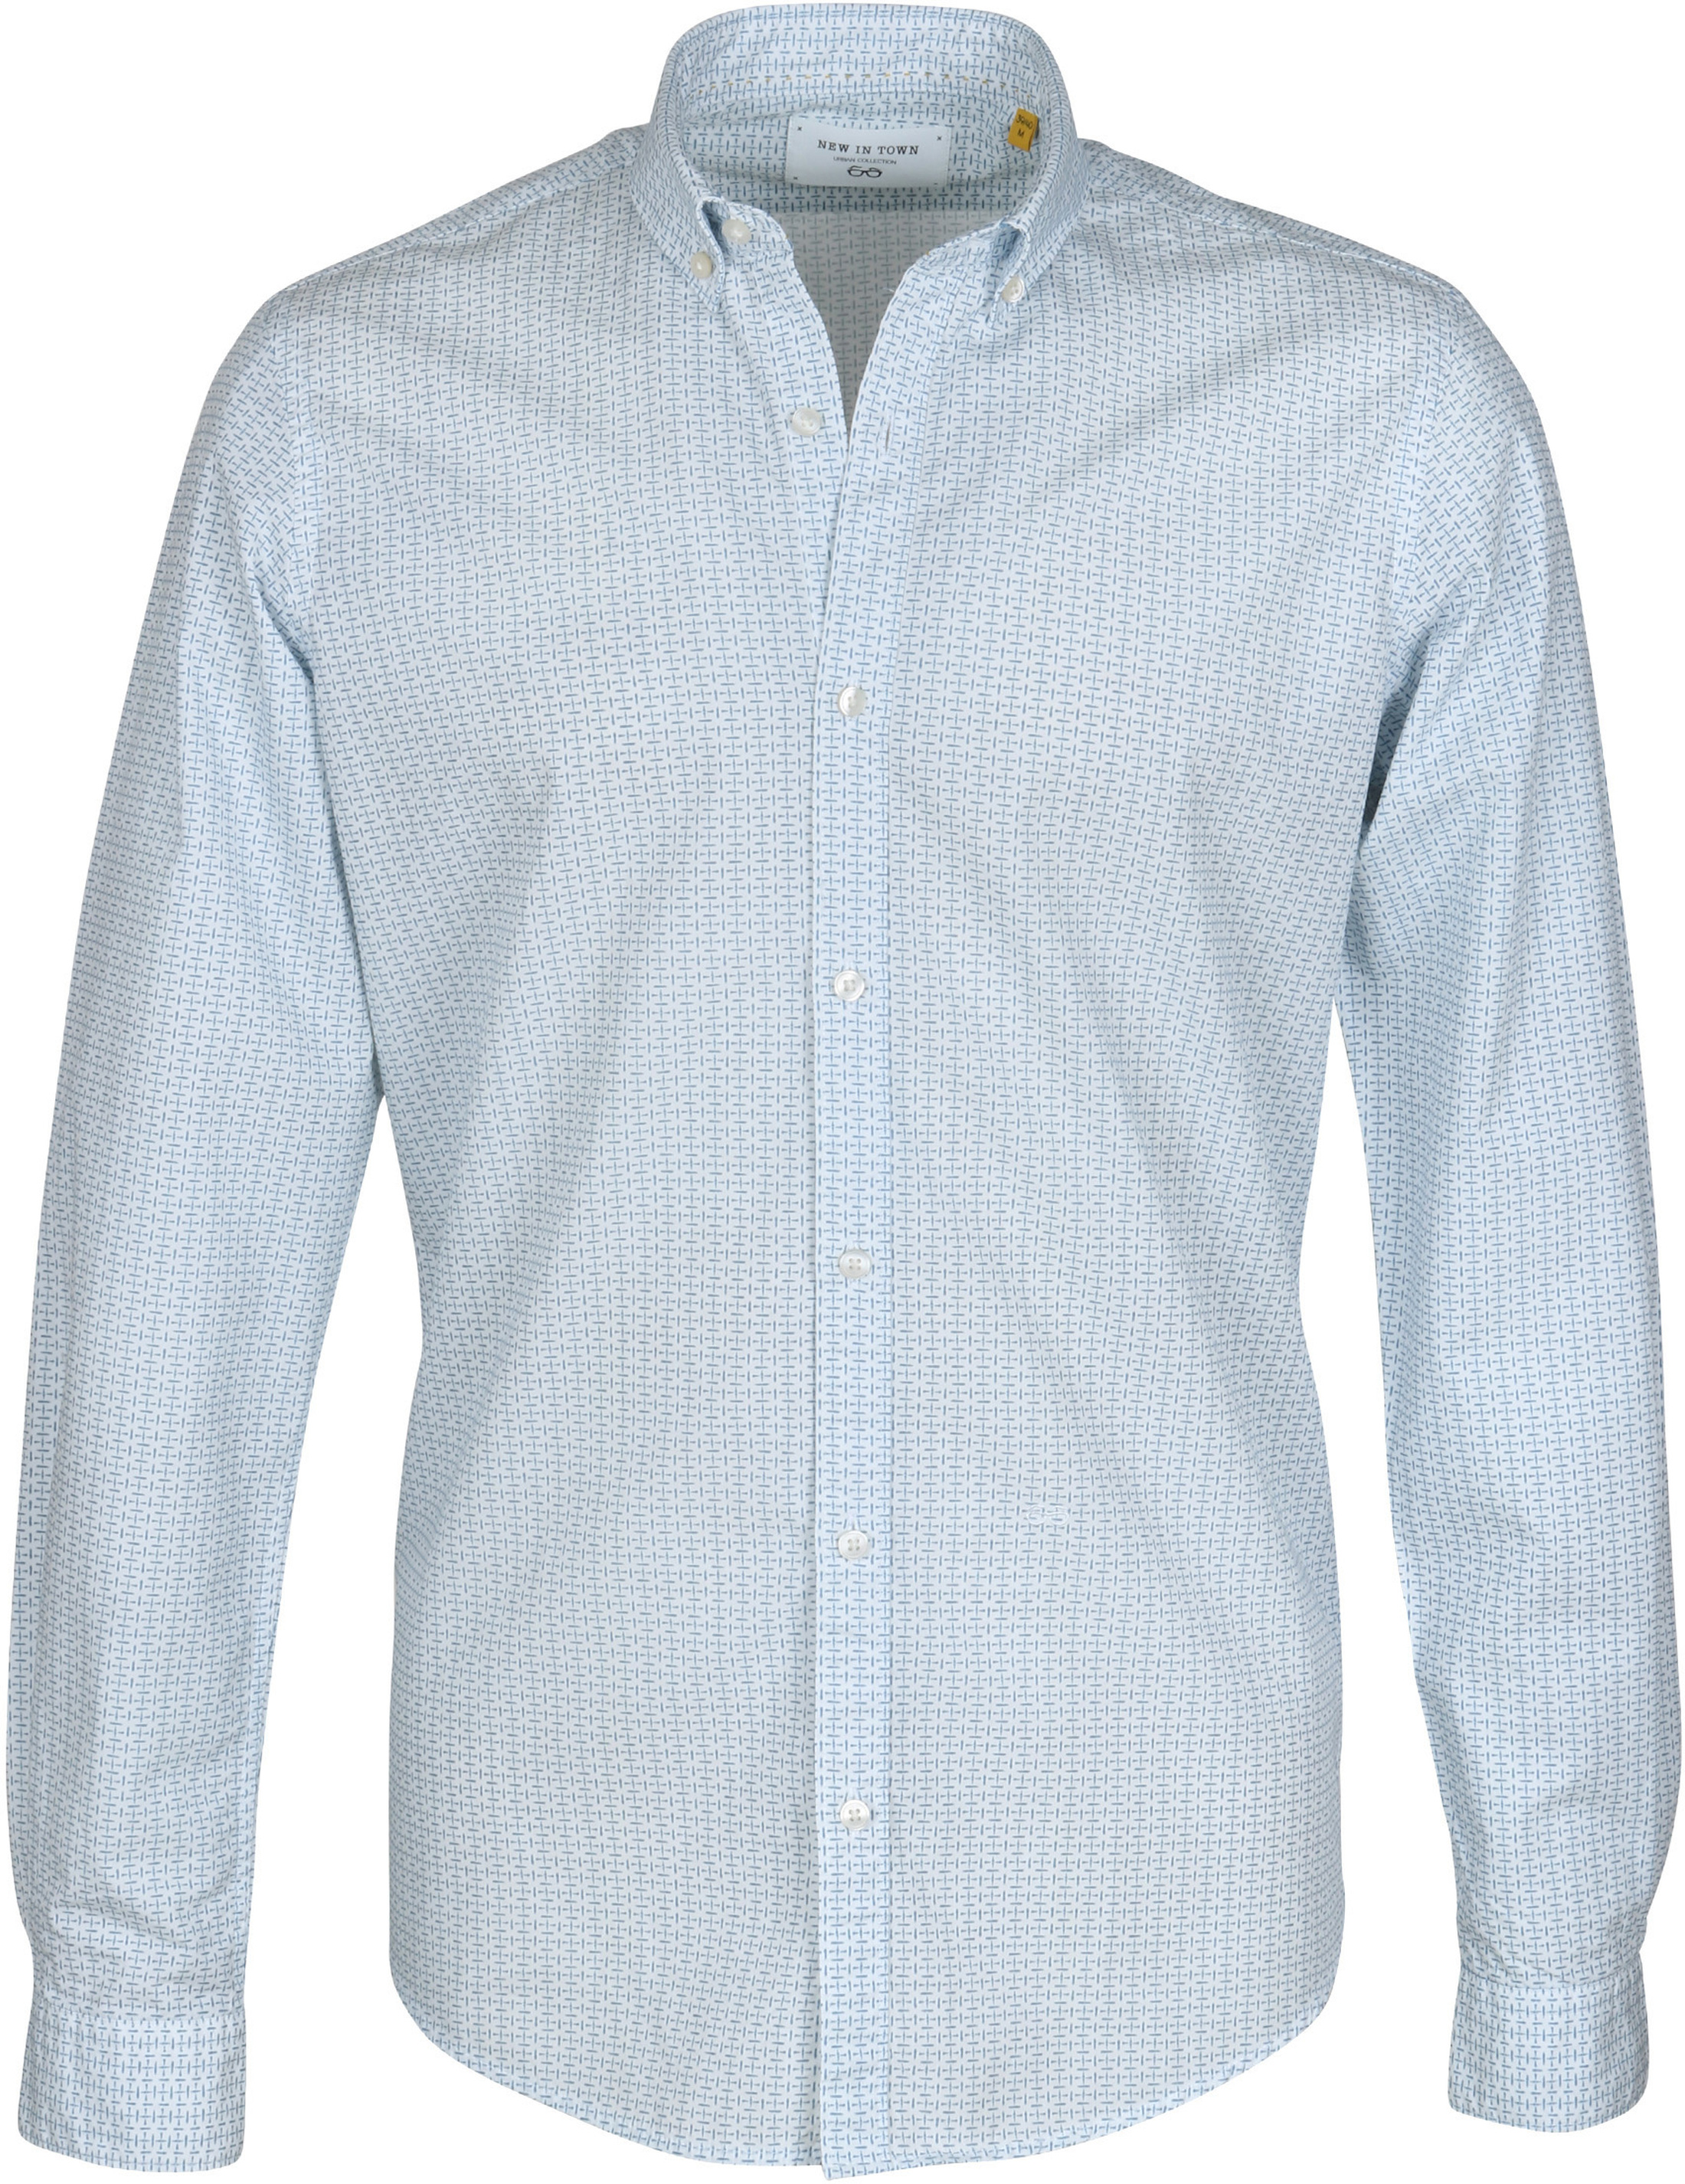 New In Town Shirt White Dessin foto 0